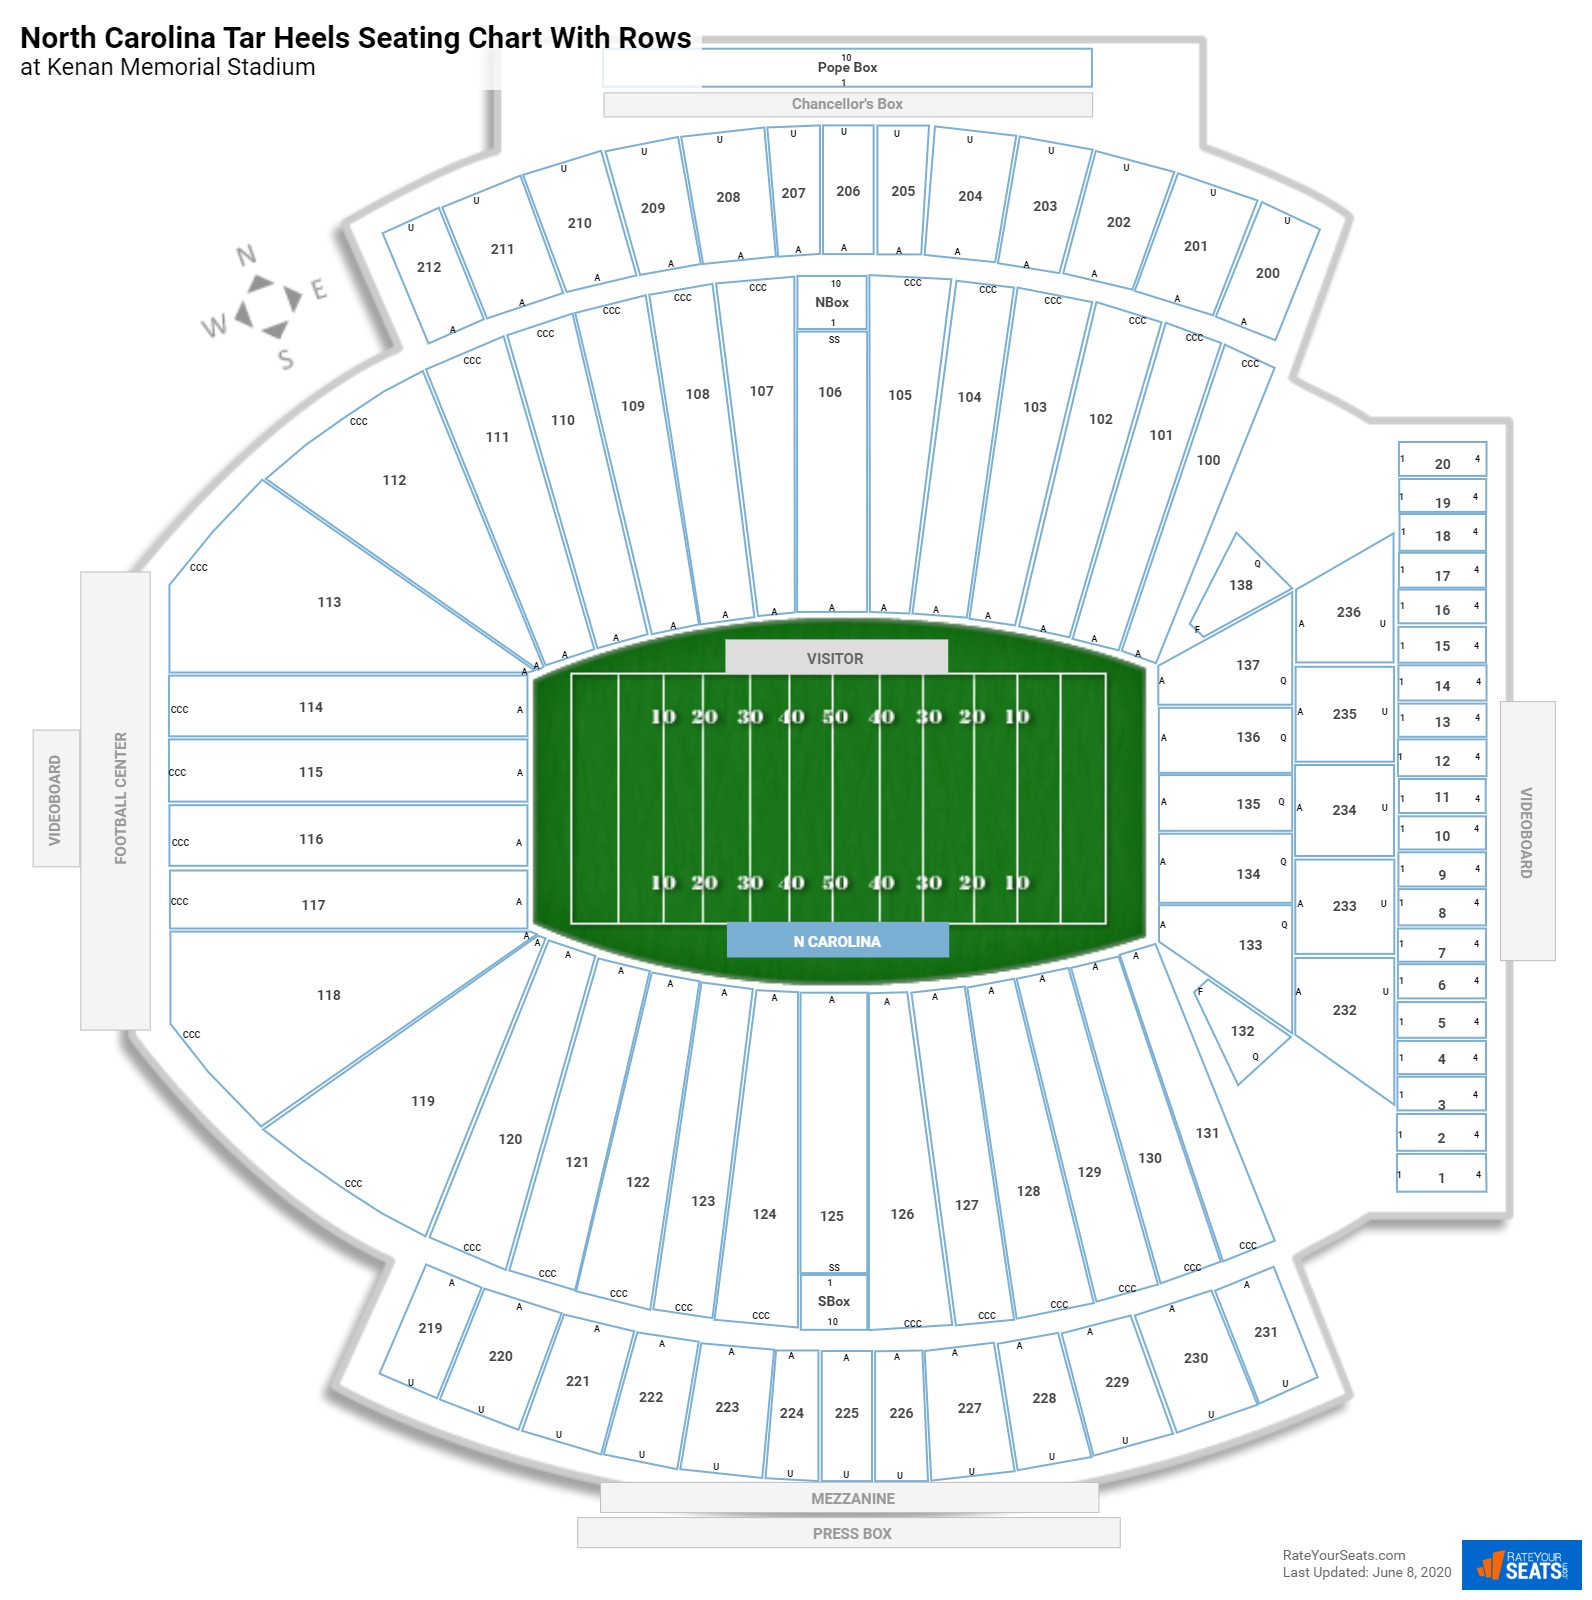 Kenan Memorial Stadium seating chart with rows